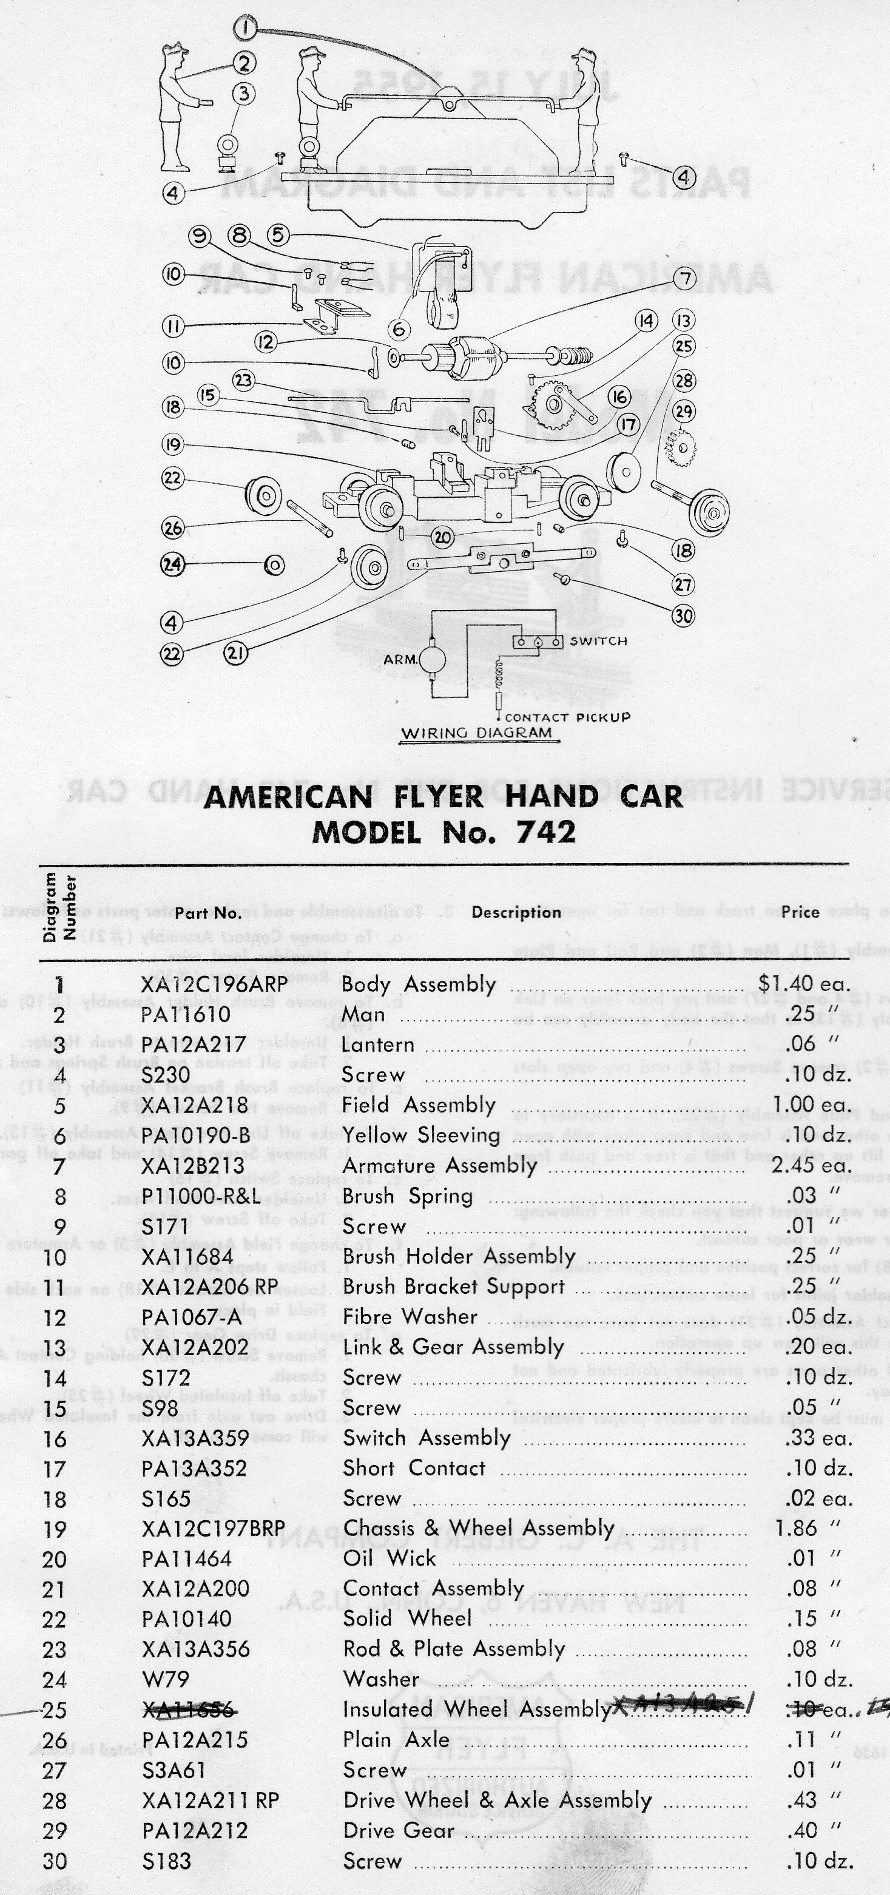 American Flyer Hand Car 740 Parts List & Diagram - Page 2